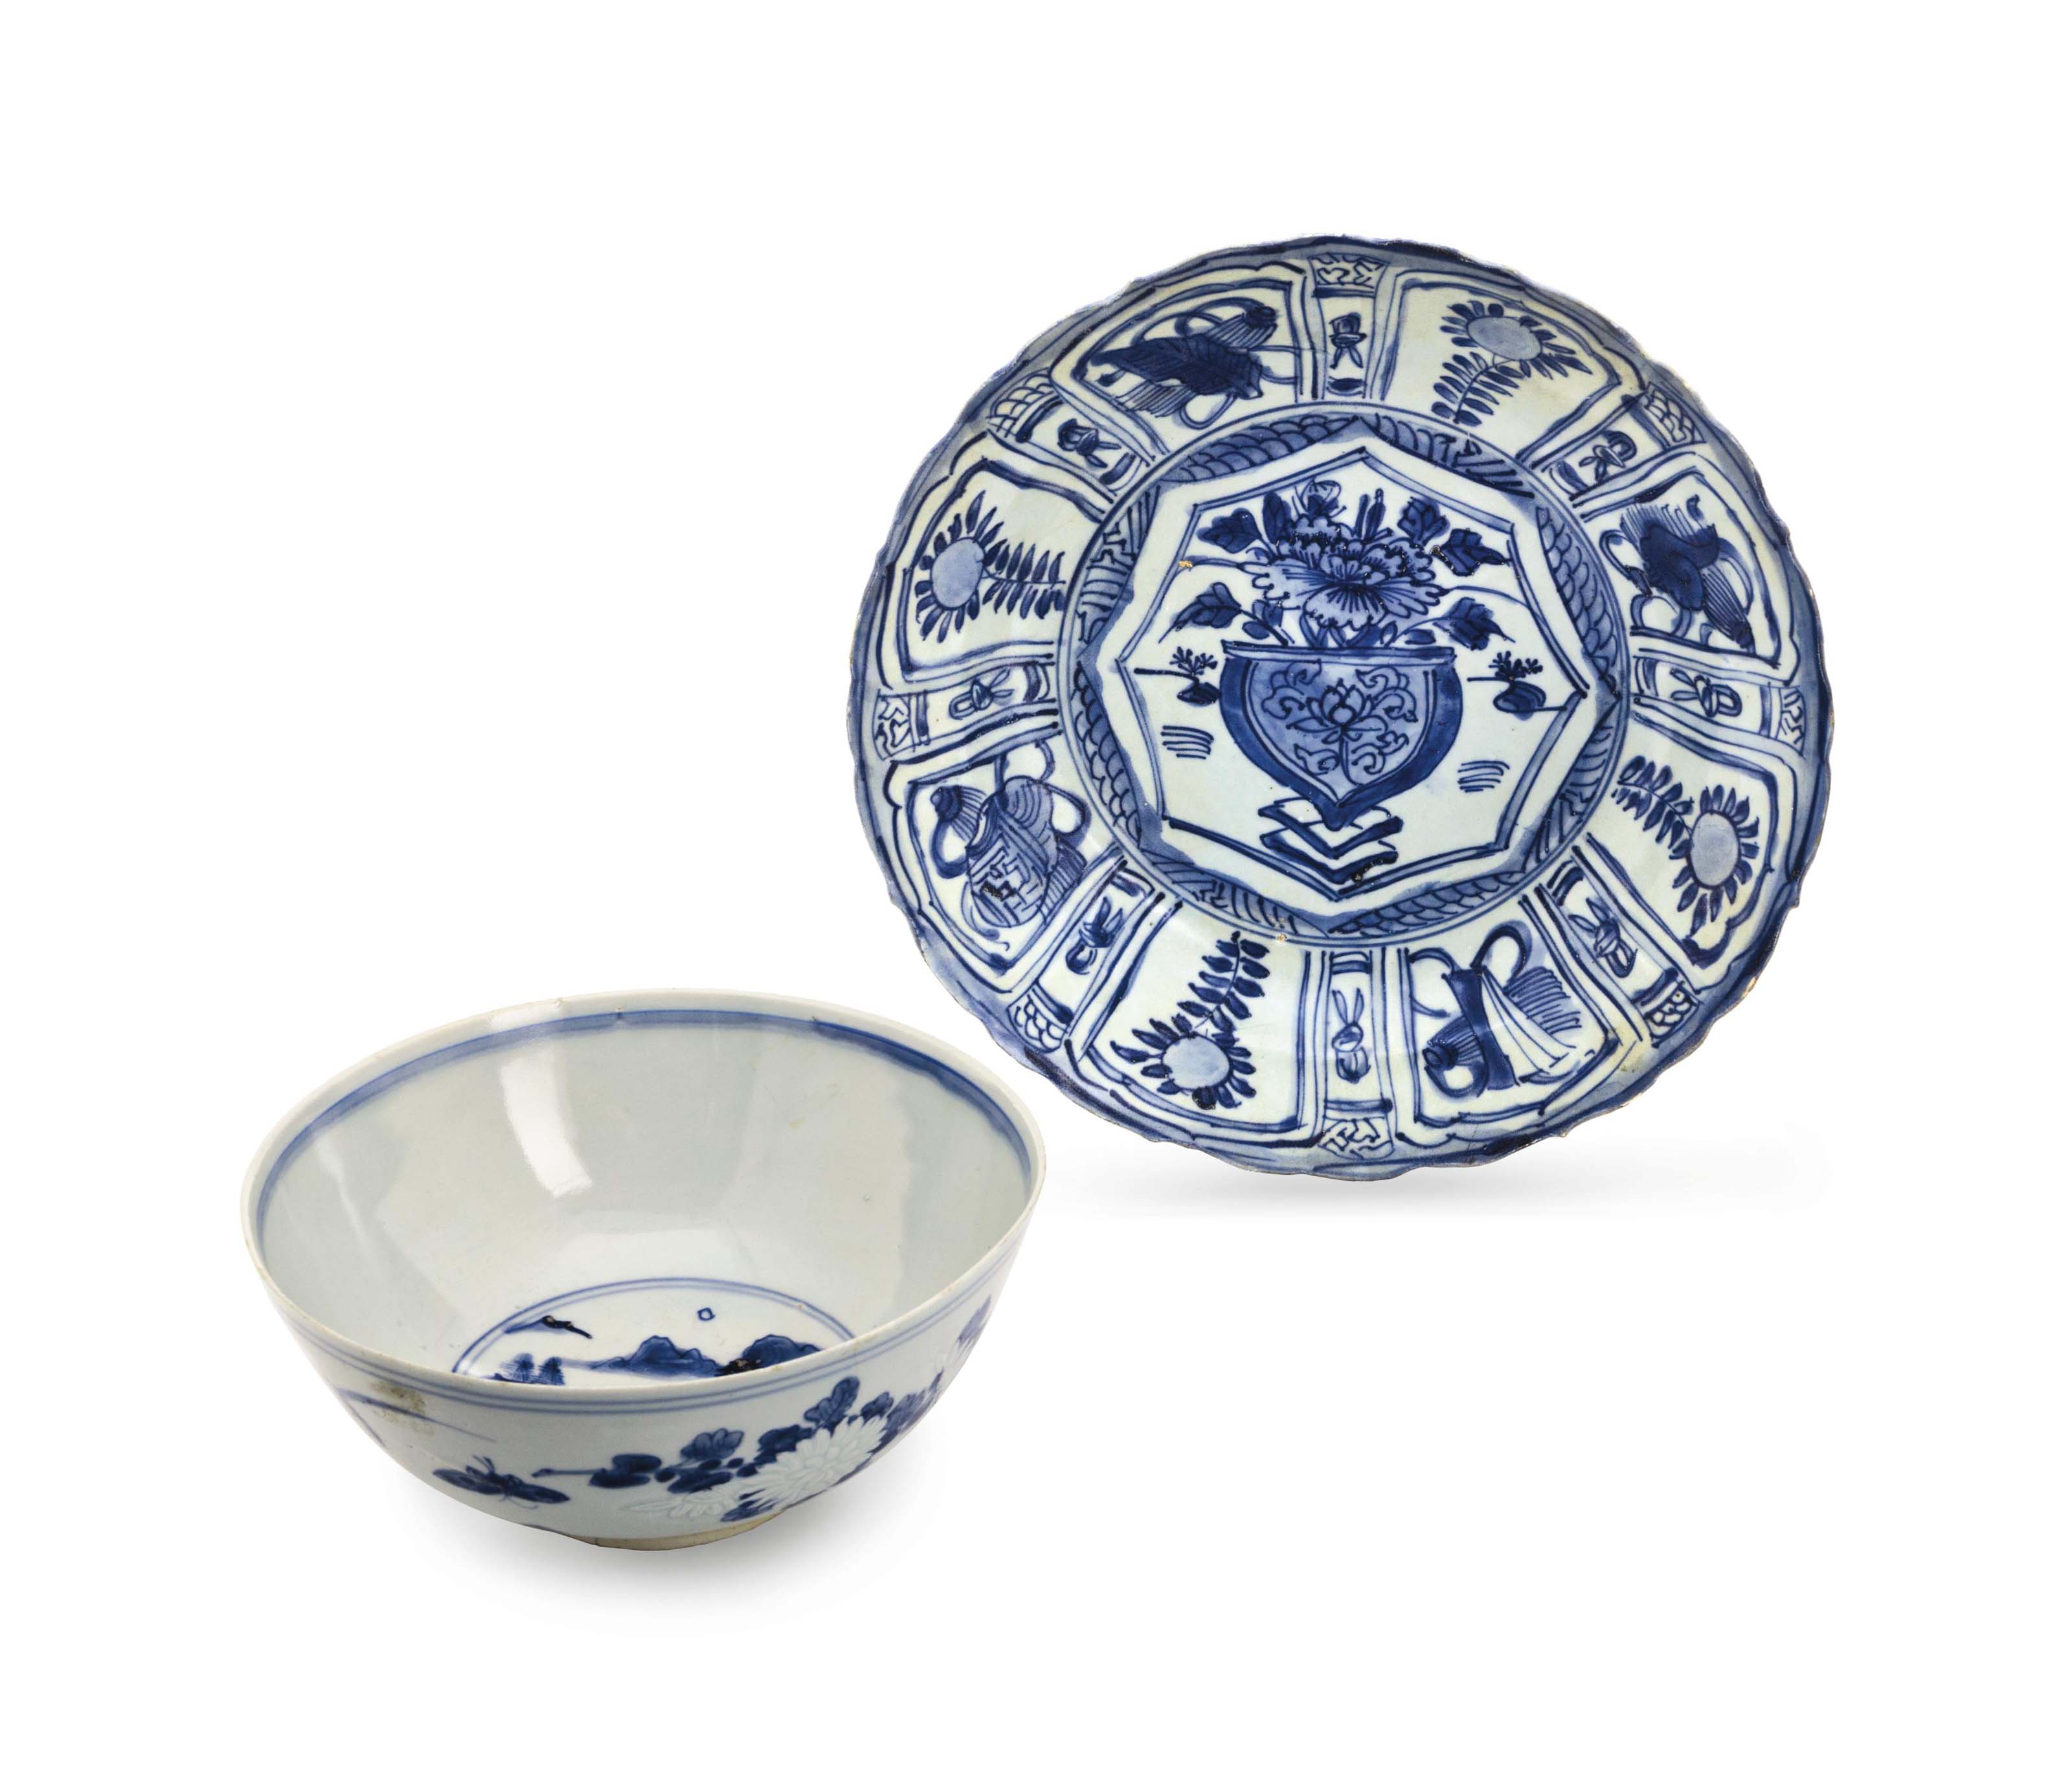 A CHINESE 'HATCHER CARGO' BLUE AND WHITE 'KRAAK' PORCELAIN CHARGER, AND A 'HATCHER CARGO' BLUE AND WHITE BOWL,